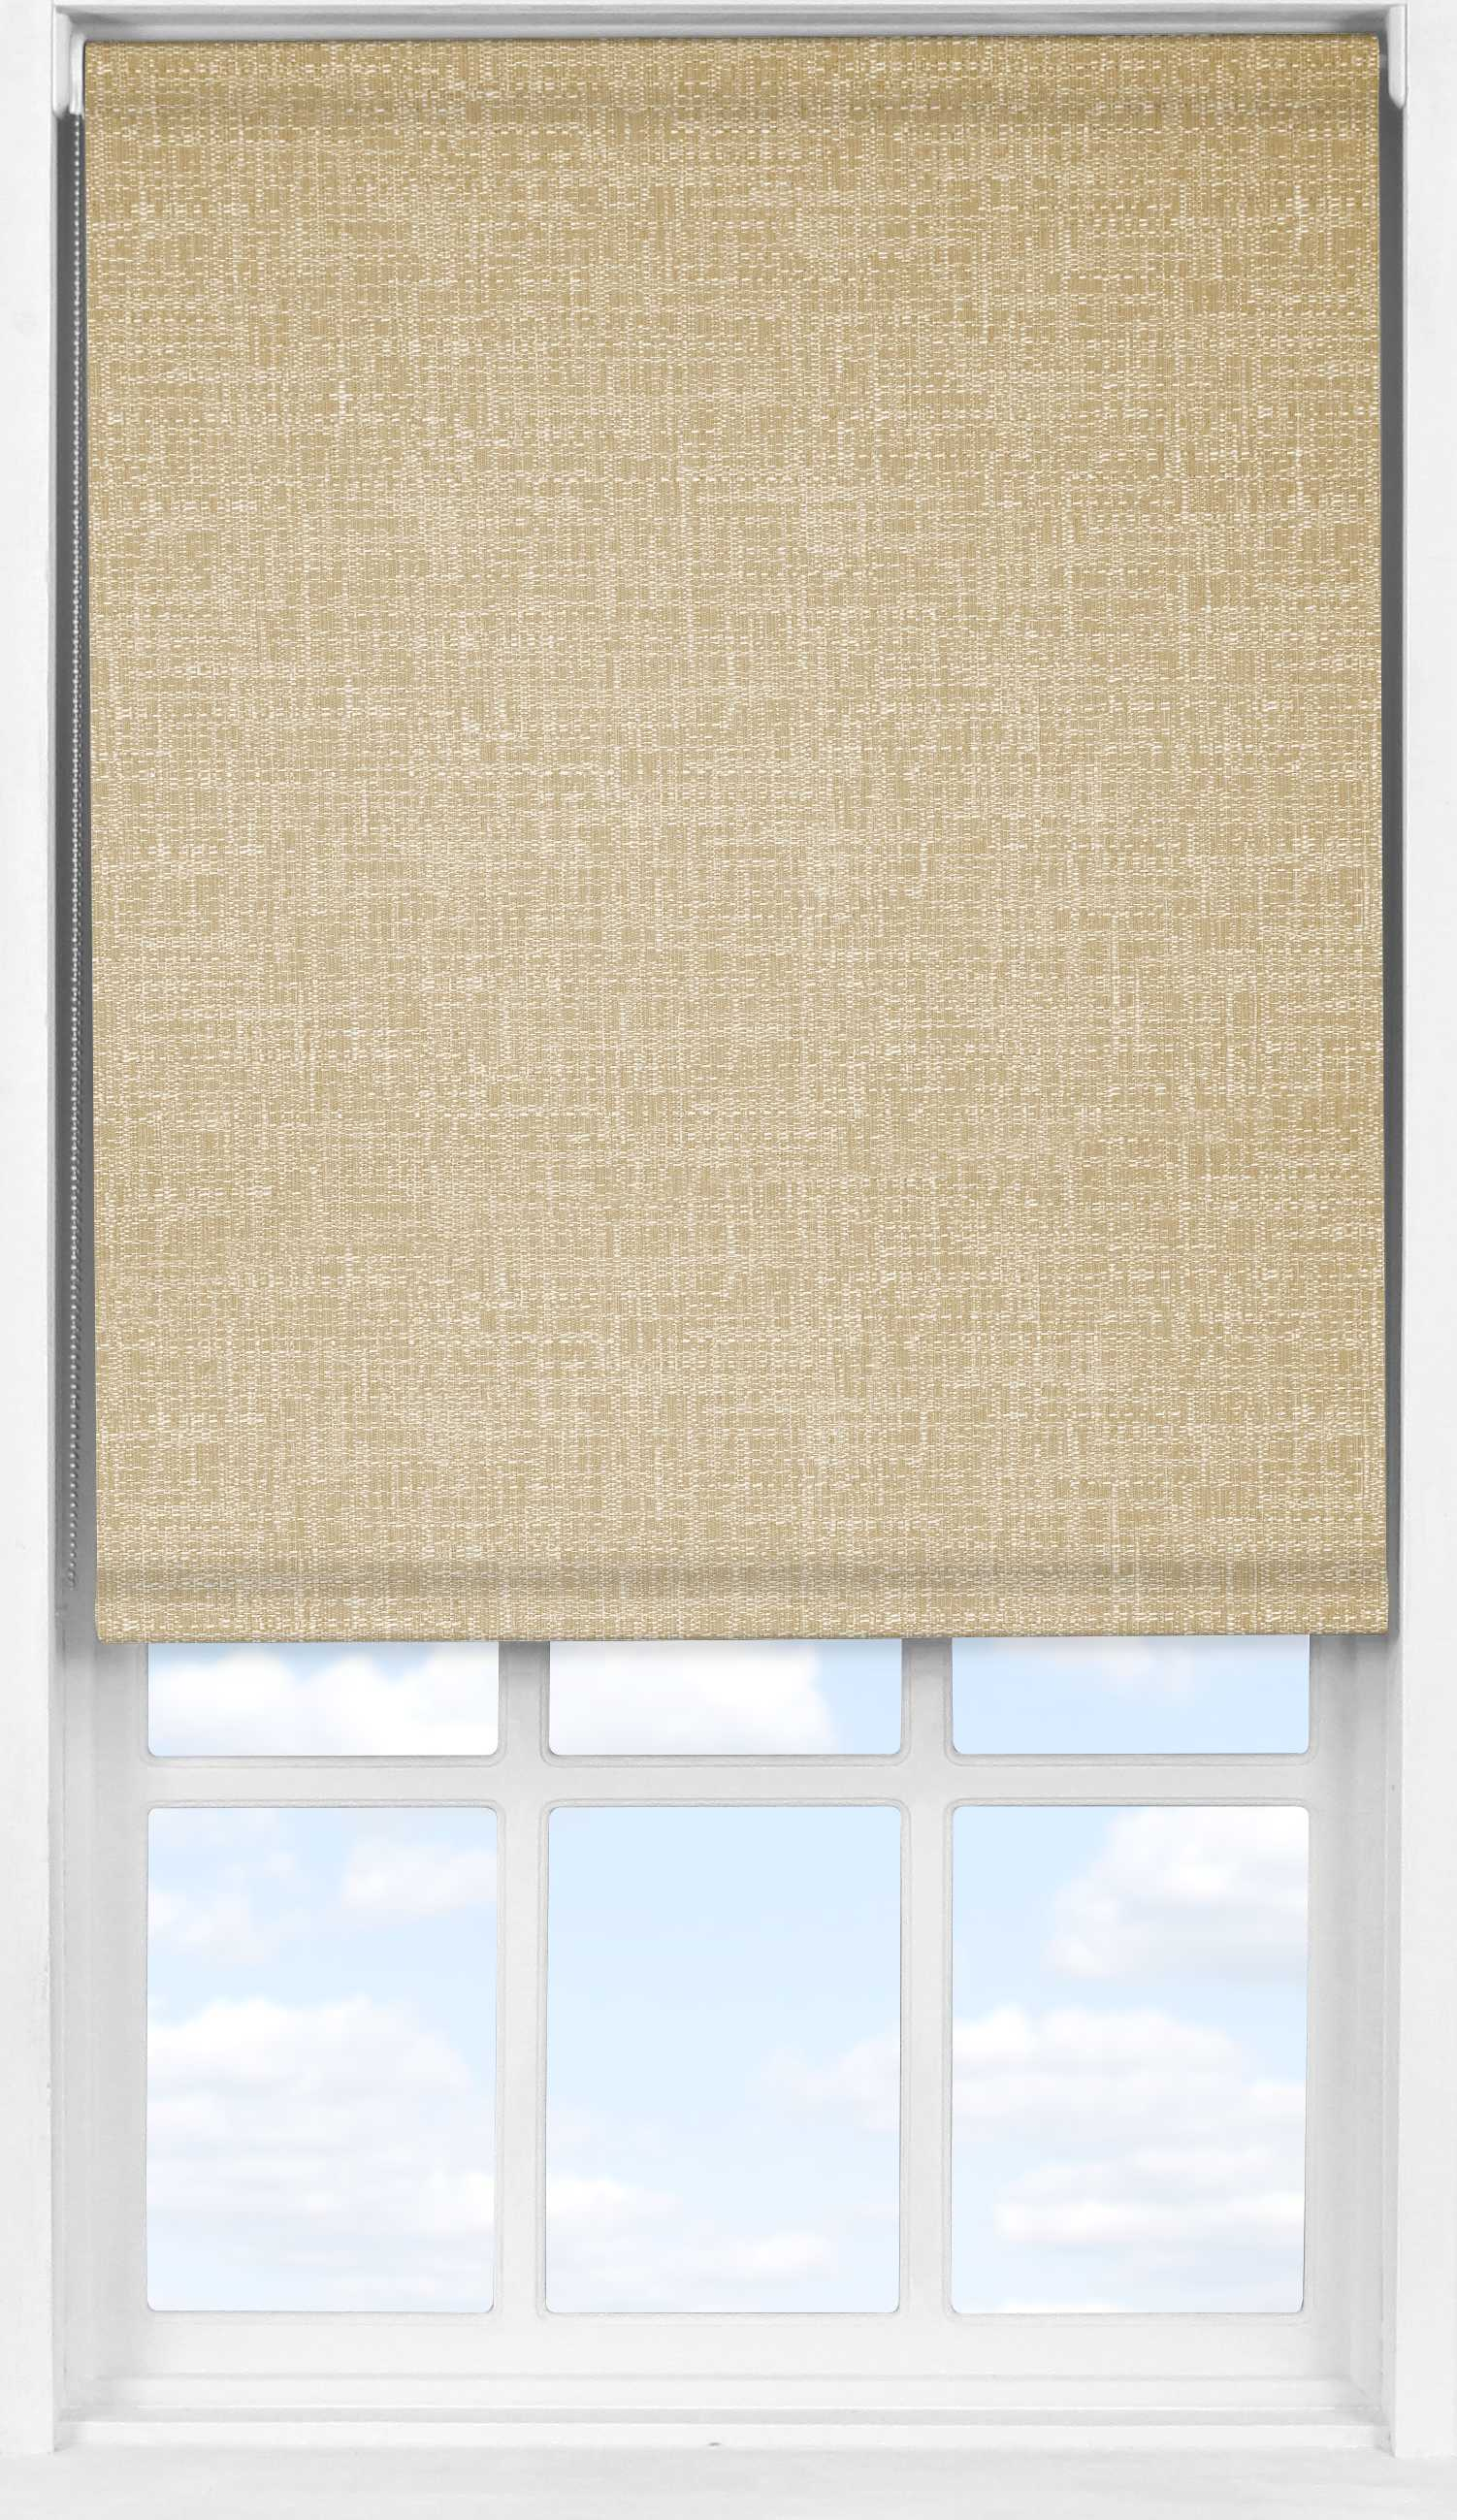 Easifit Roller Blind in Rich Seagrass Translucent